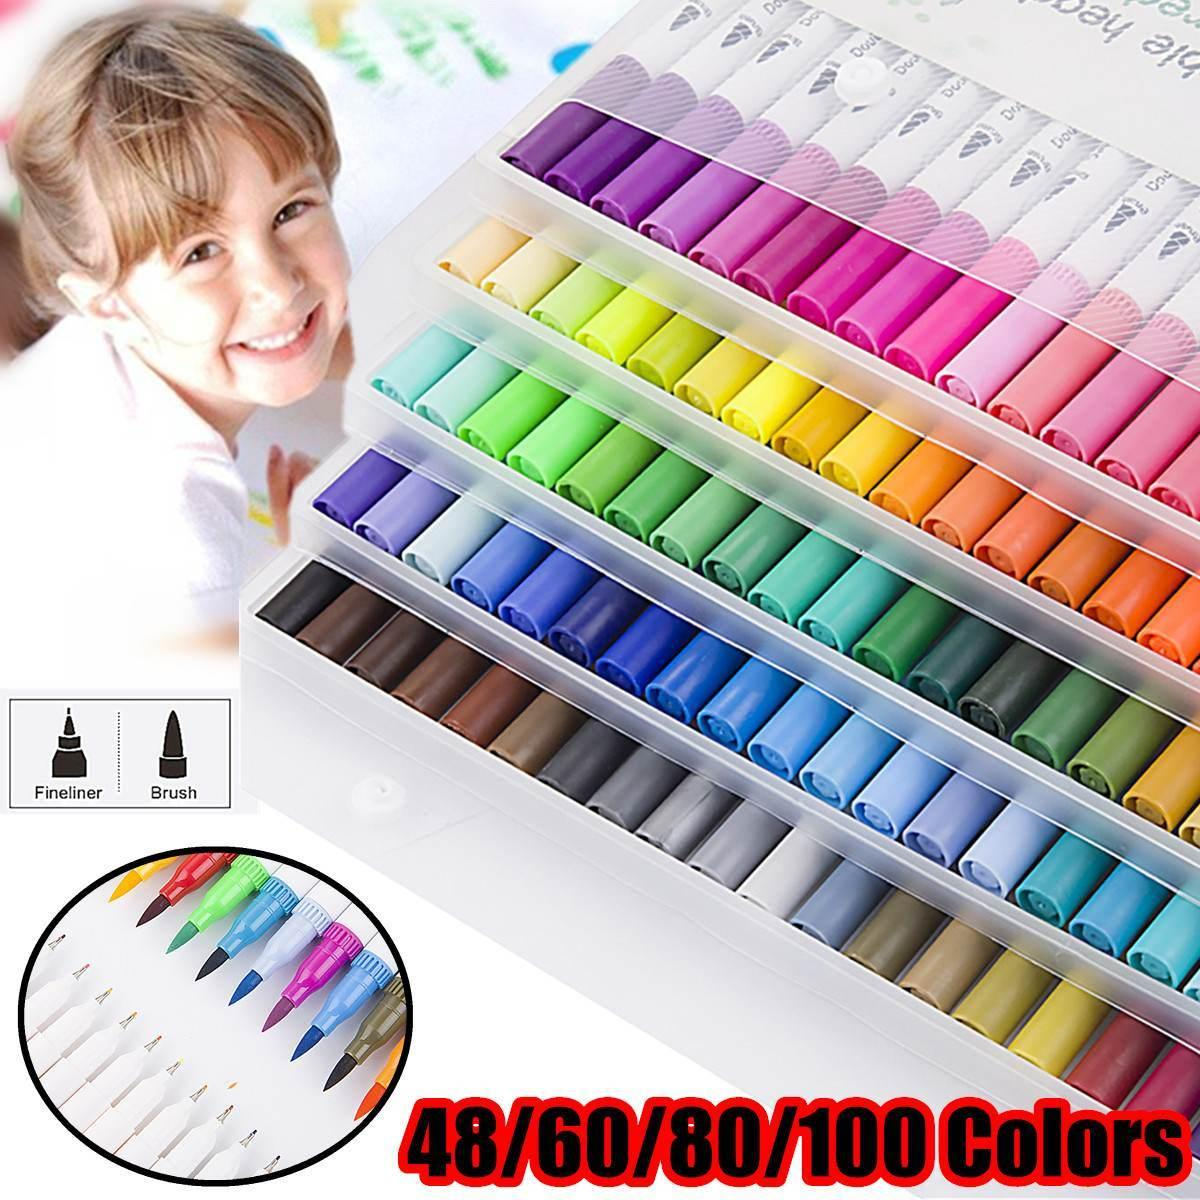 100 Colors Dual Tip Brush Color Pen Art Markers Pen TouchFive Copic Markers Pen Watercolor Fineliner Drawing Painting Stationery Y200709